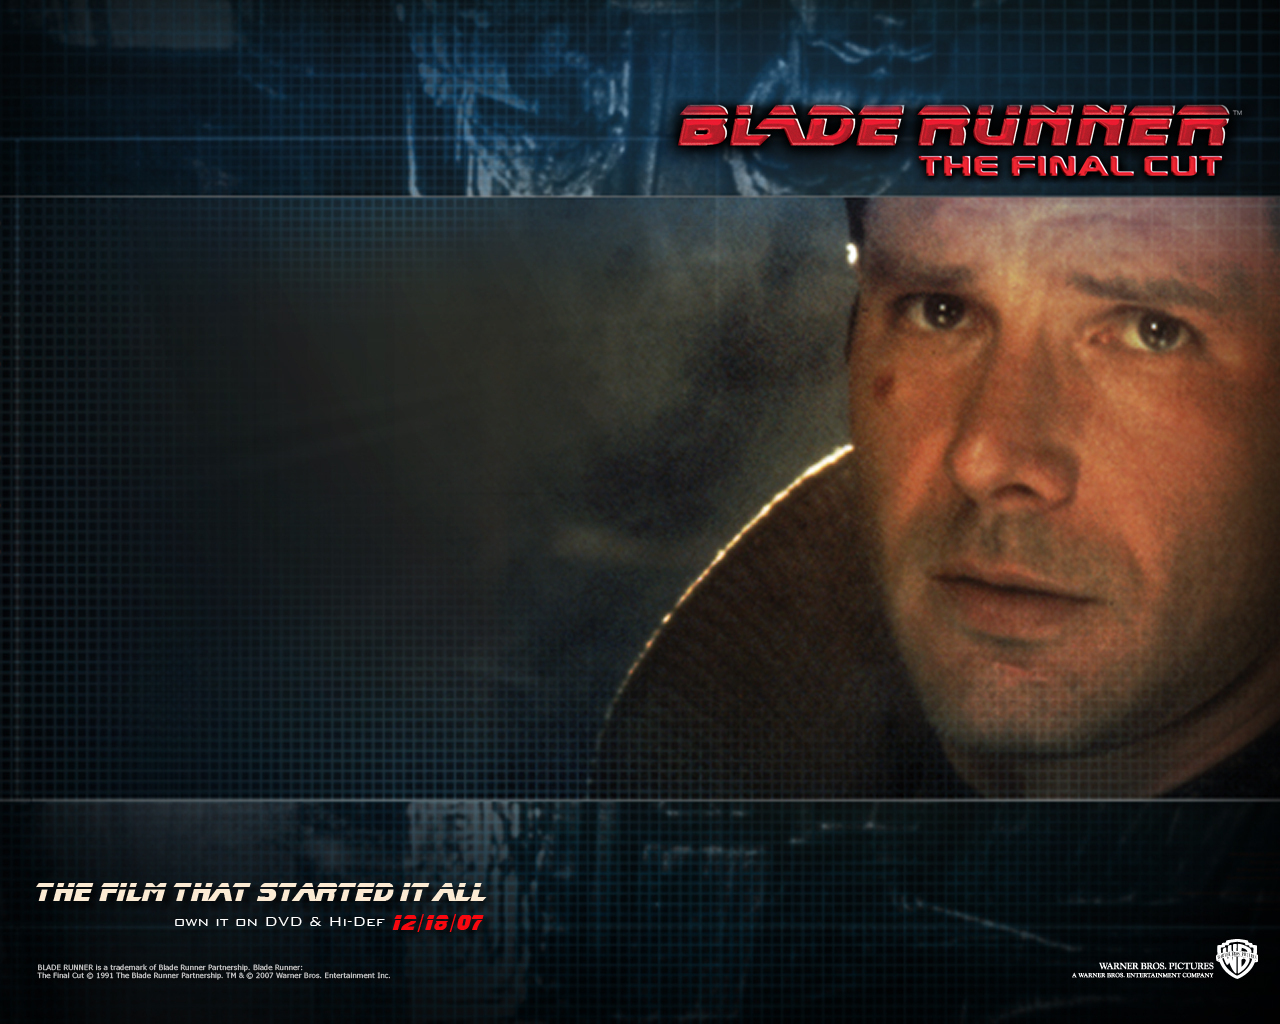 Official Blade Runner Wallpaper   Blade Runner Wallpaper 8207491 1280x1024